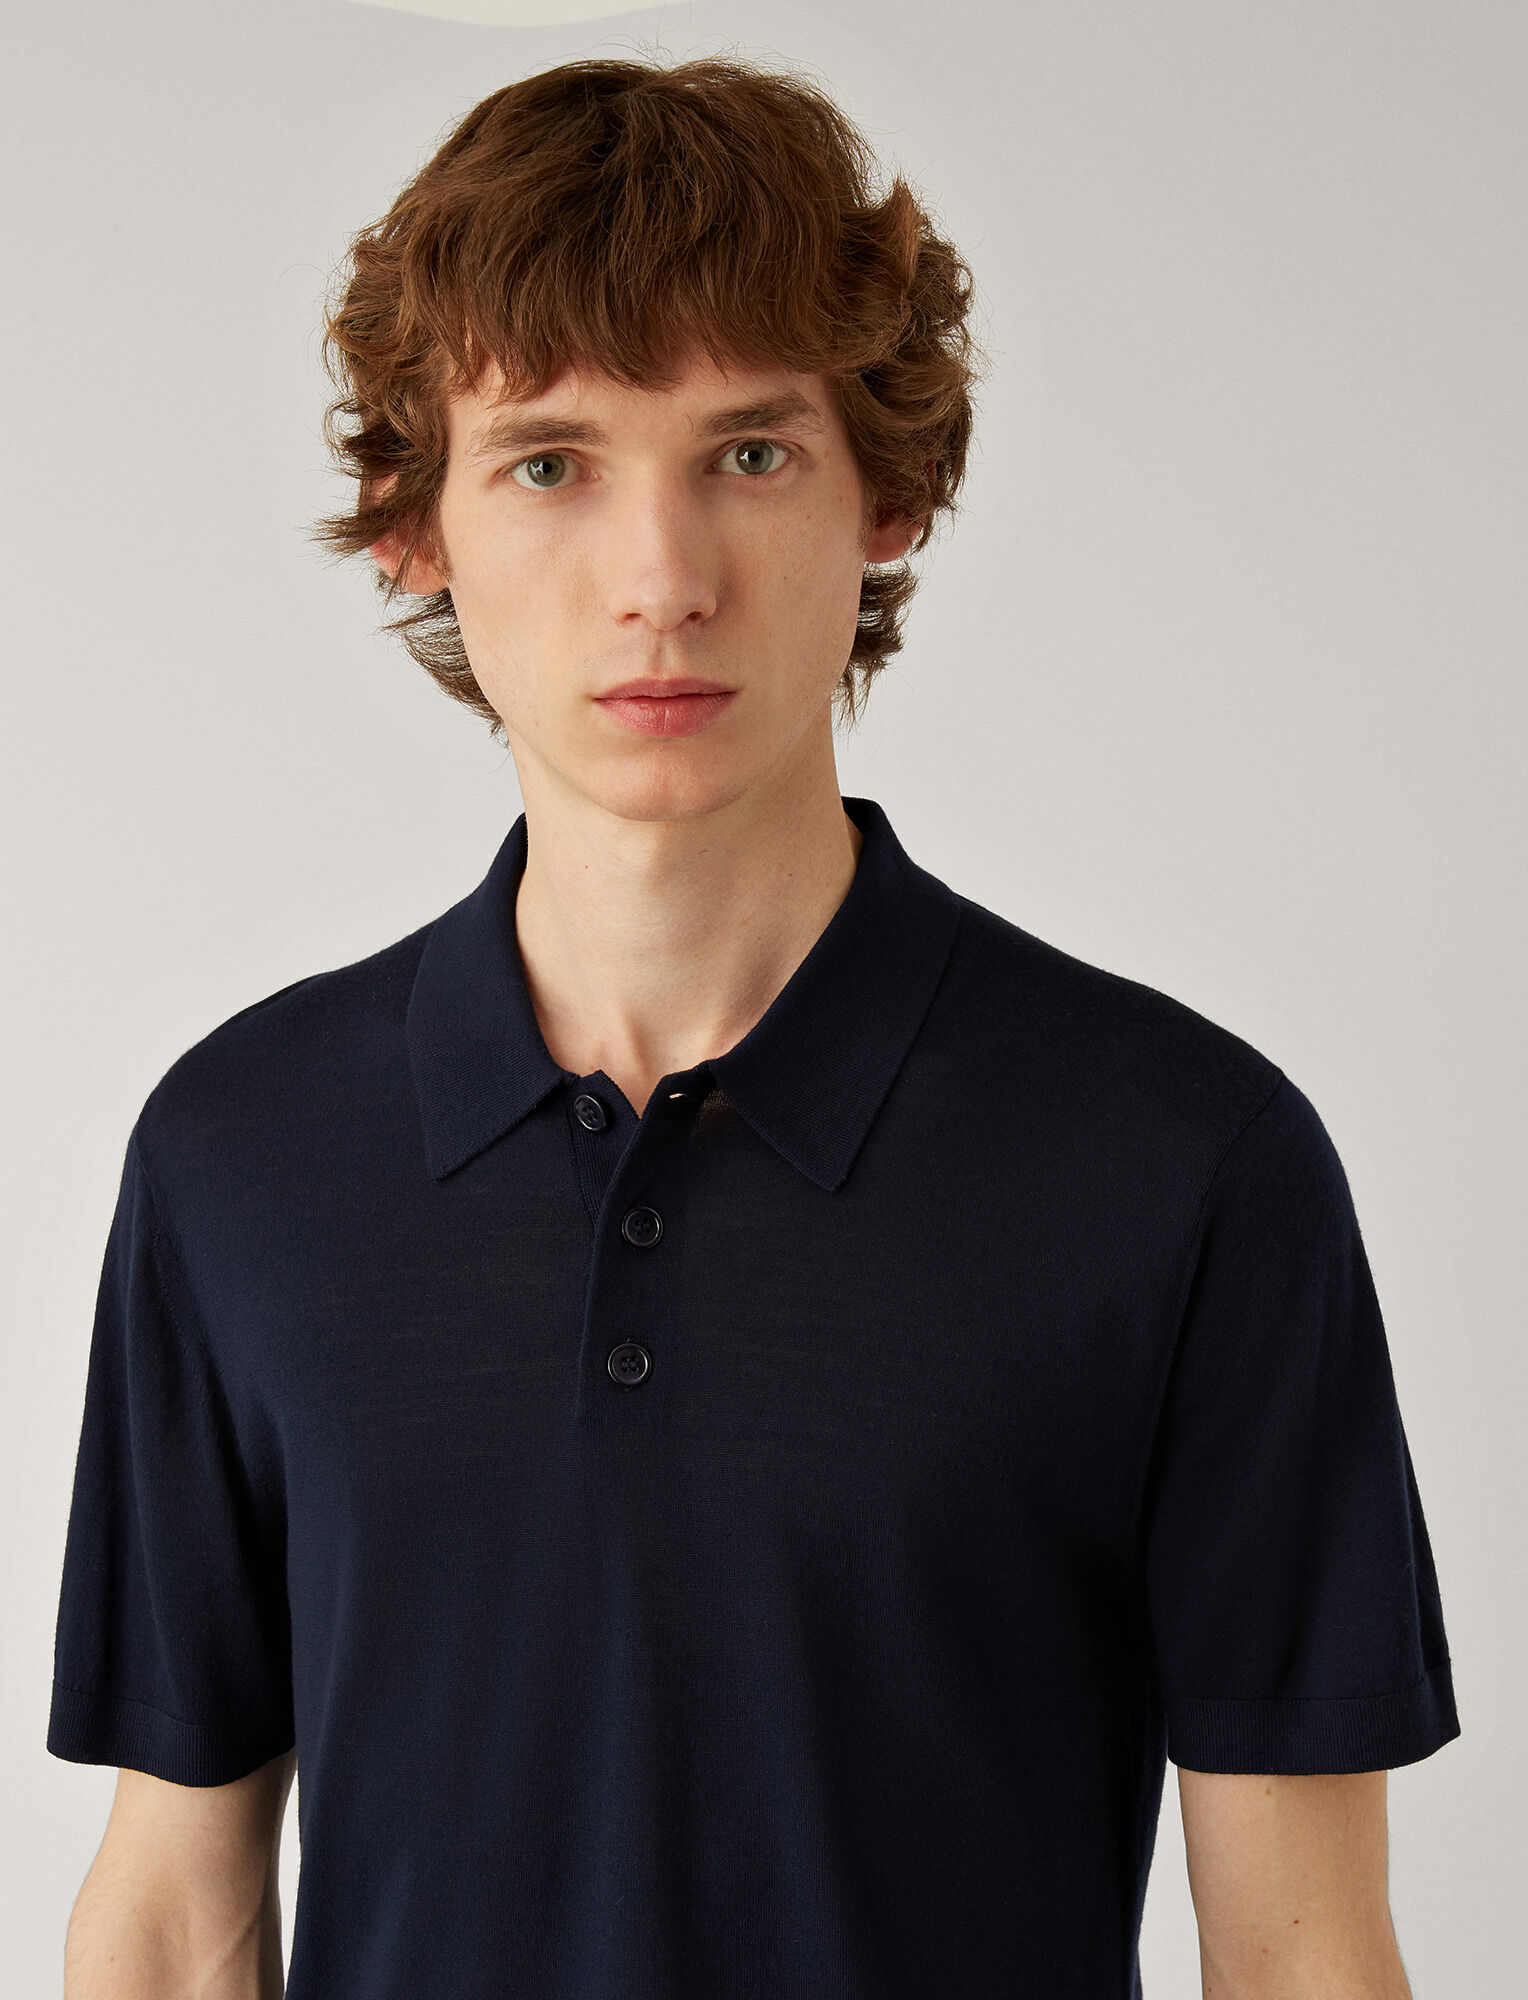 Joseph, Polo Light Merinos Knit, in NAVY